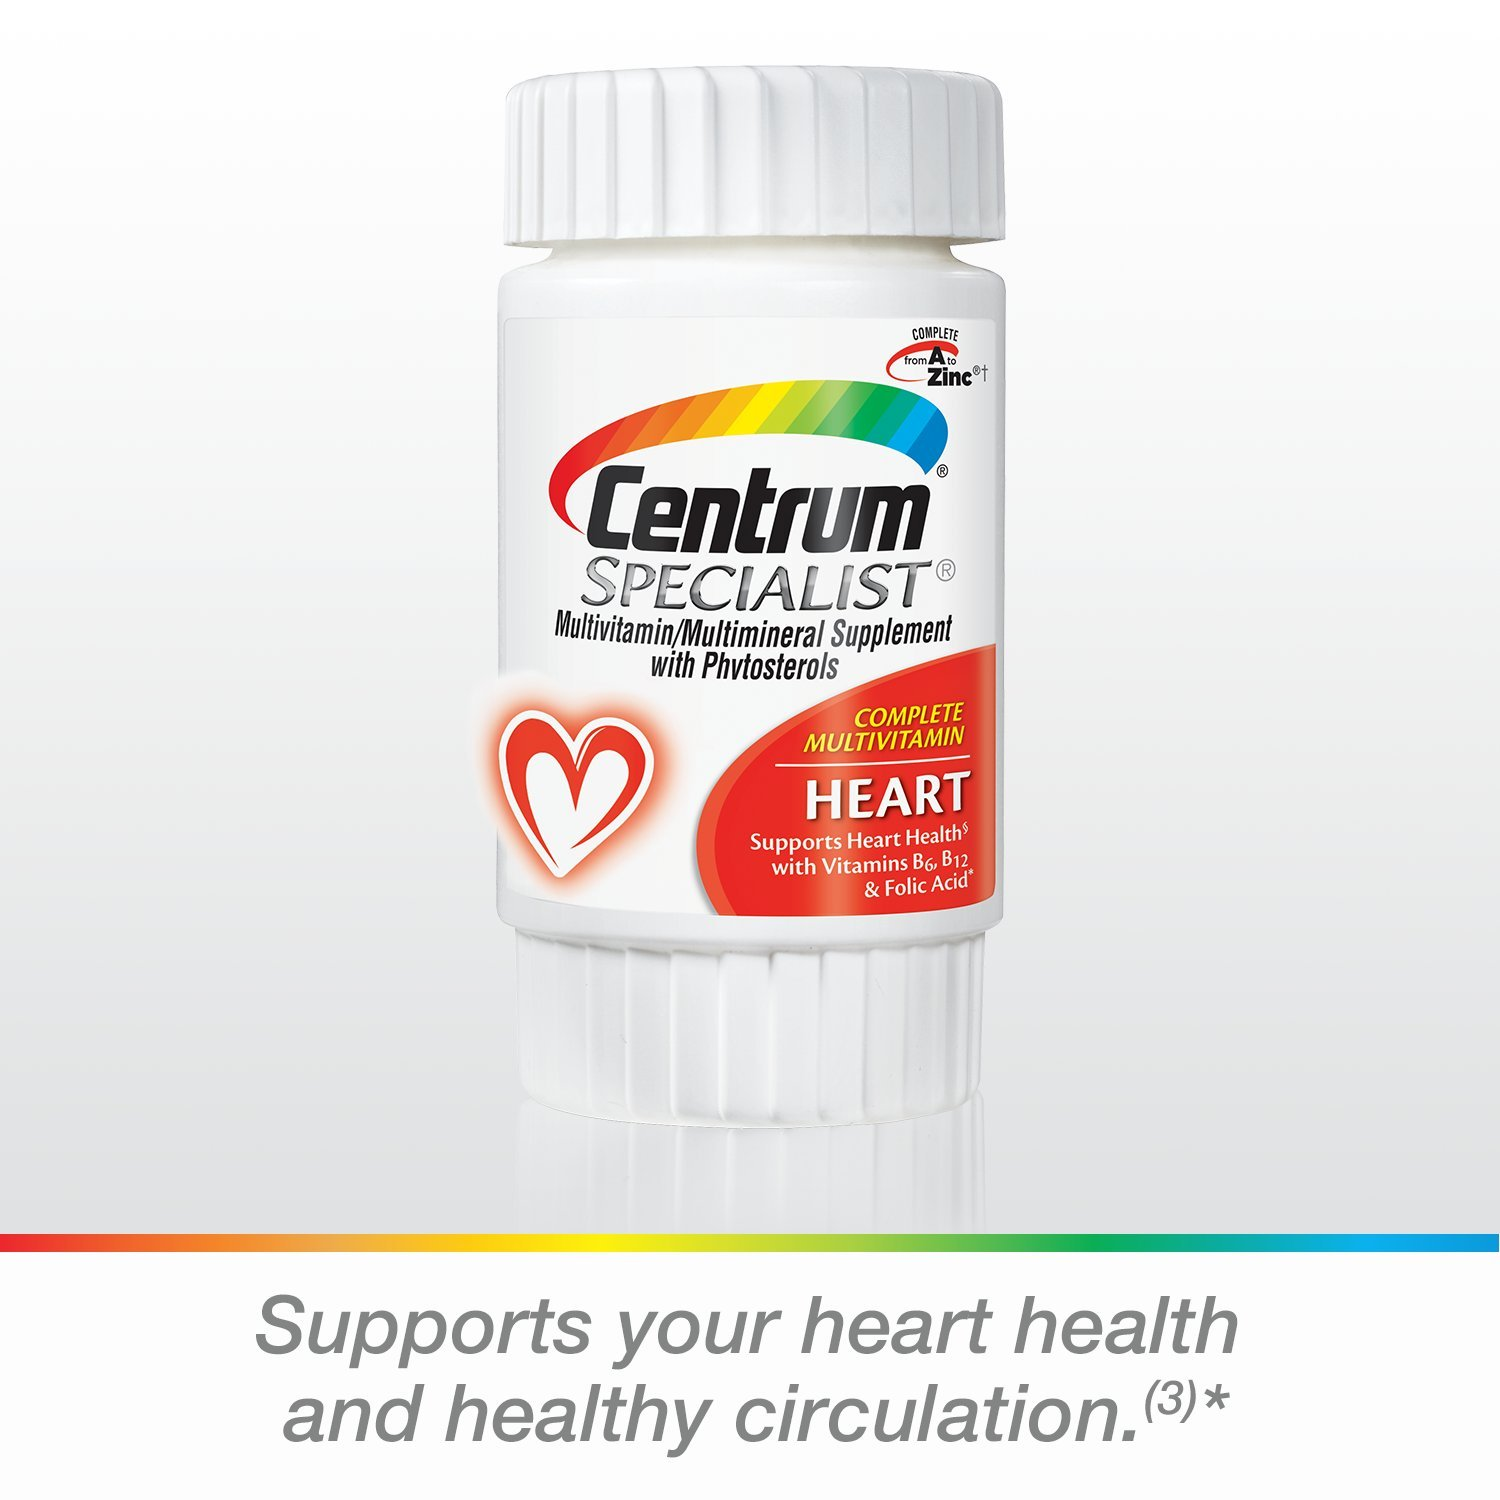 Amazon.com: Centrum Specialist Heart Adult (60 Count) Multivitamin/Multimineral Supplement Tablet, Vitamin D3, C, B-Vitamins with Phytosterols: Prime Pantry